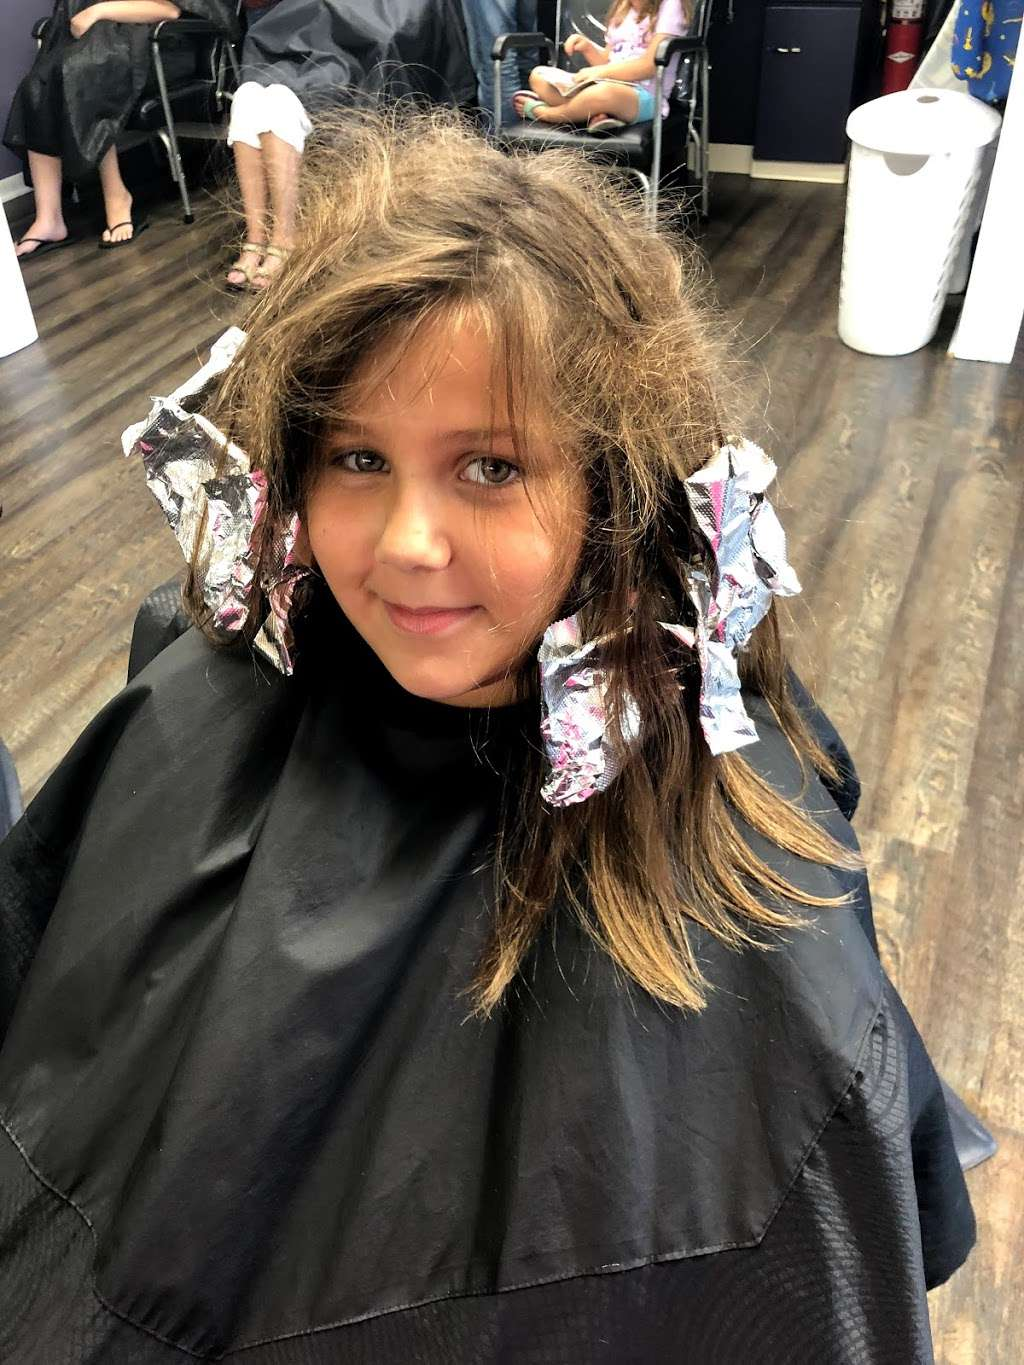 Salon 715 - hair care  | Photo 10 of 10 | Address: 715 N A St, Elwood, IN 46036, USA | Phone: (765) 552-9247